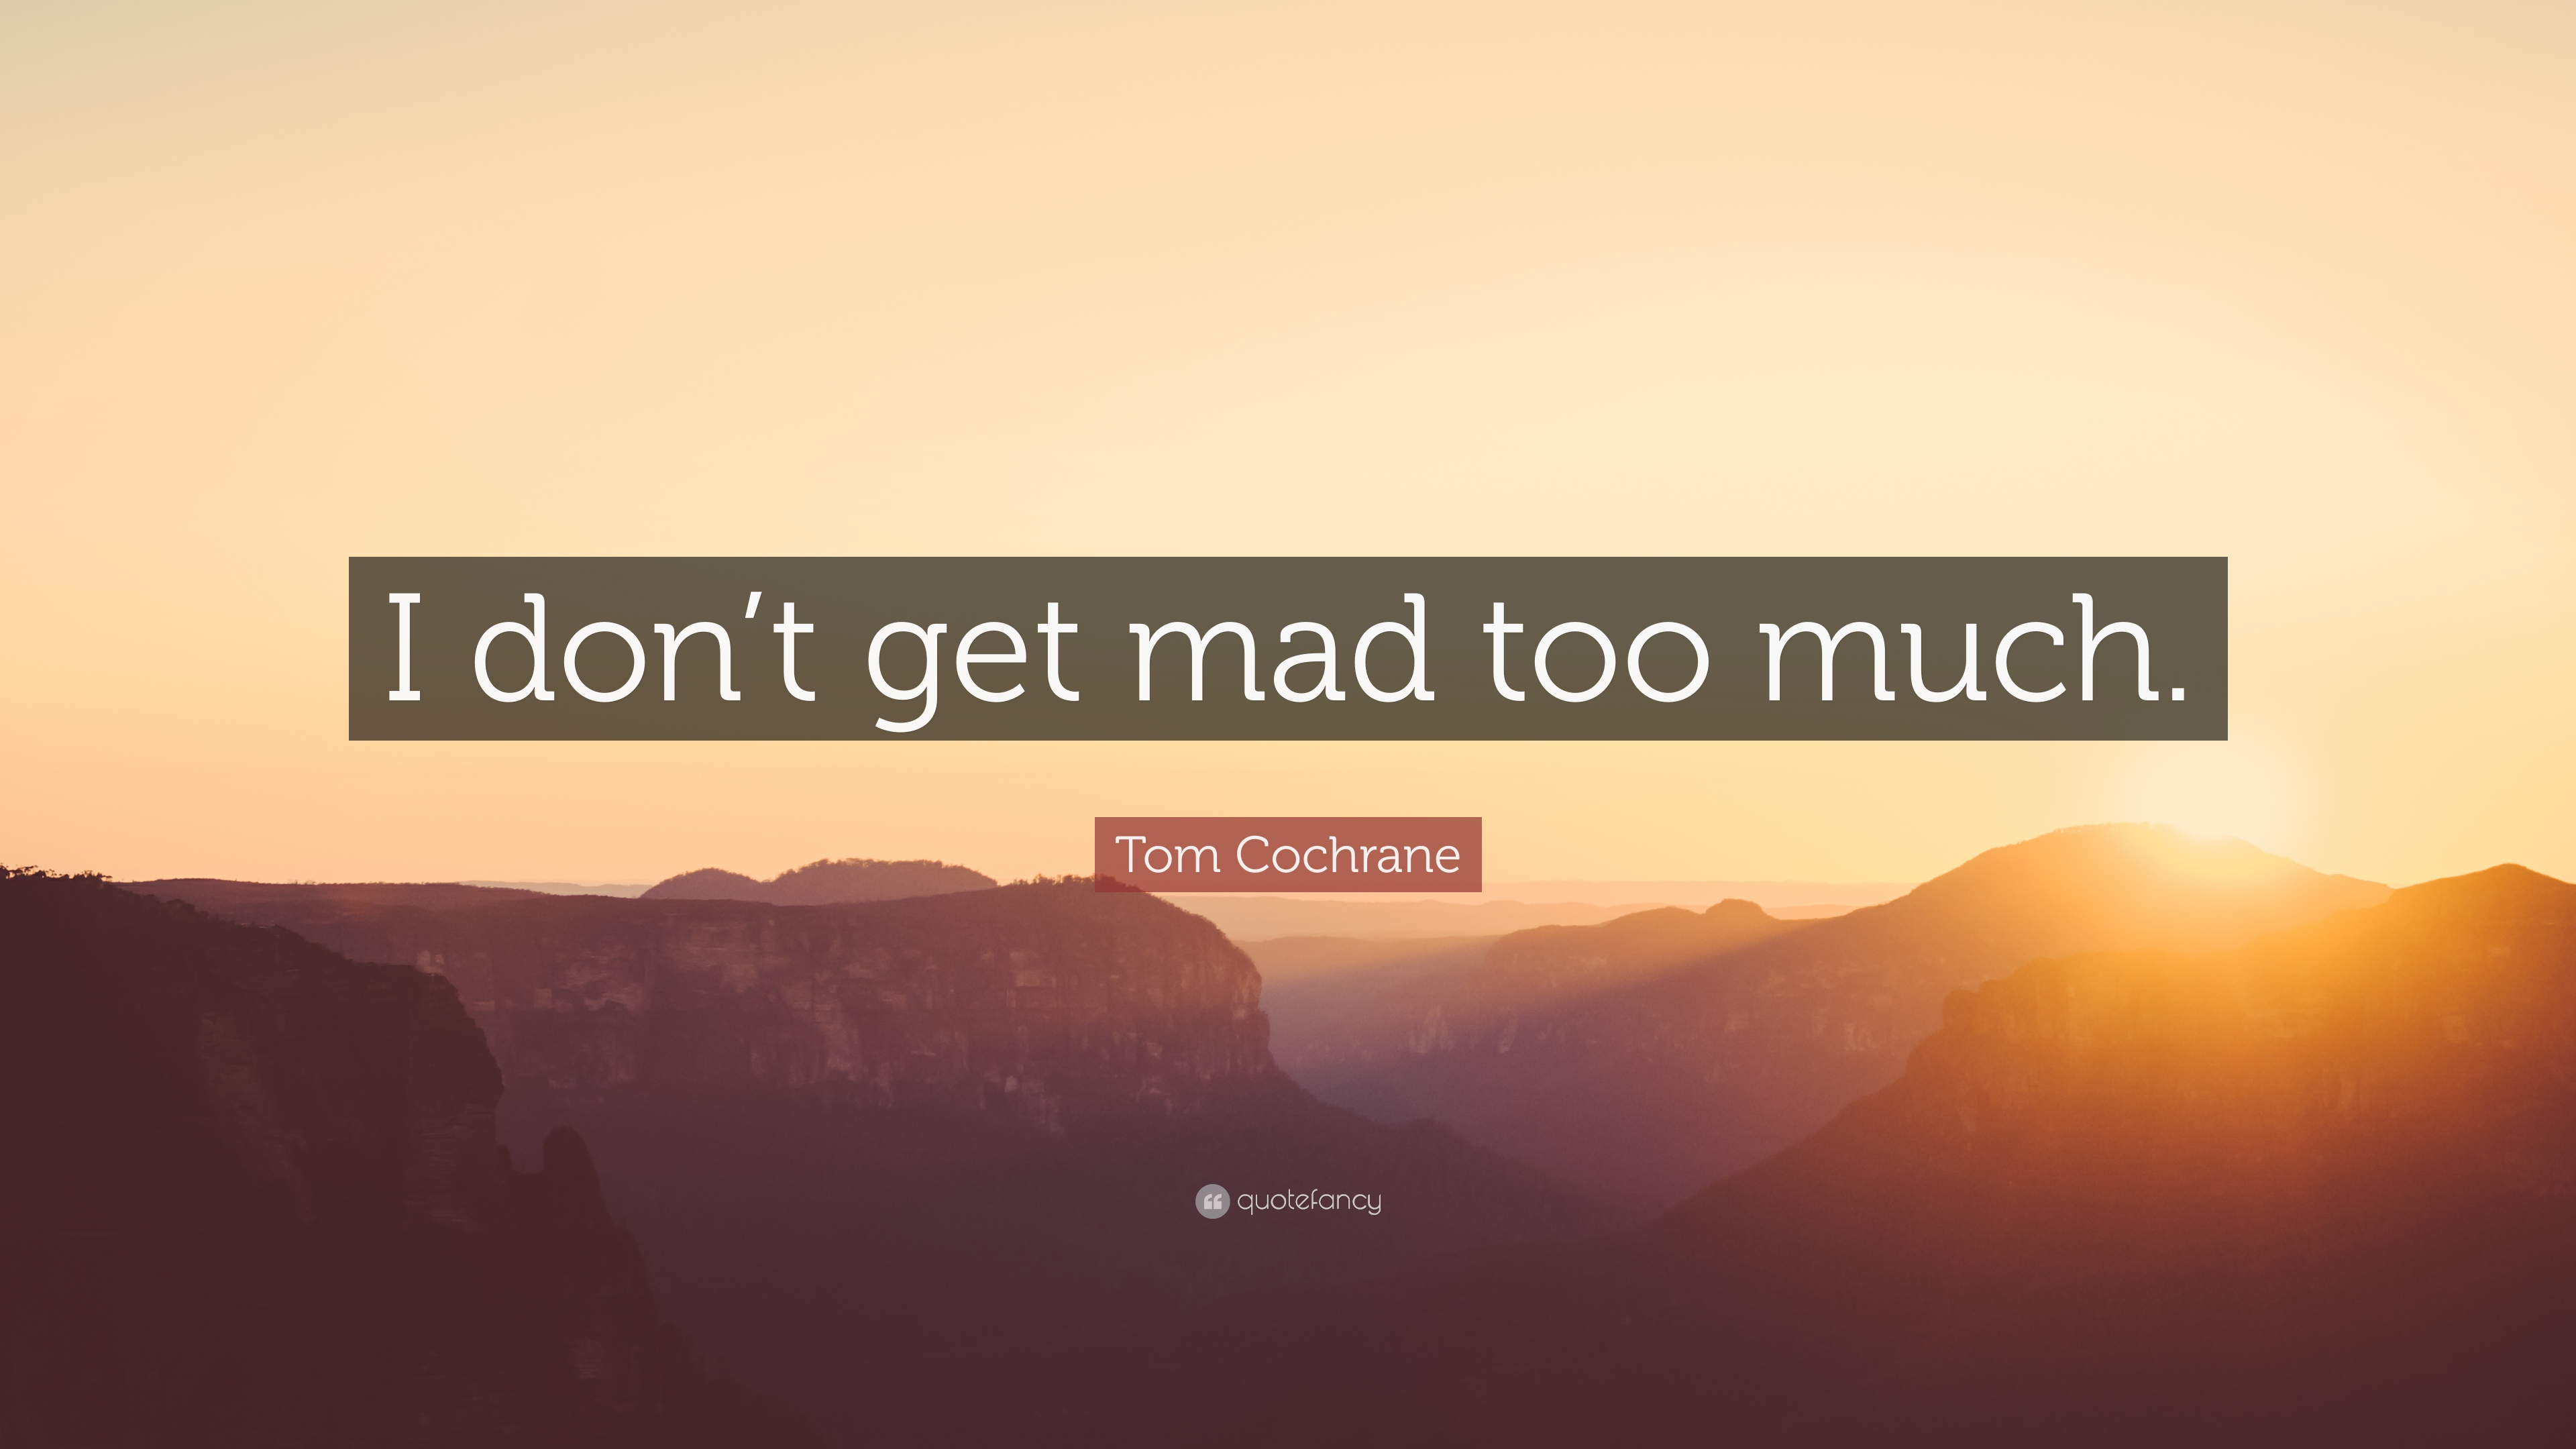 Amazing Tom Cochrane Quote: U201cI Donu0027t Get Mad Too Much.u201d